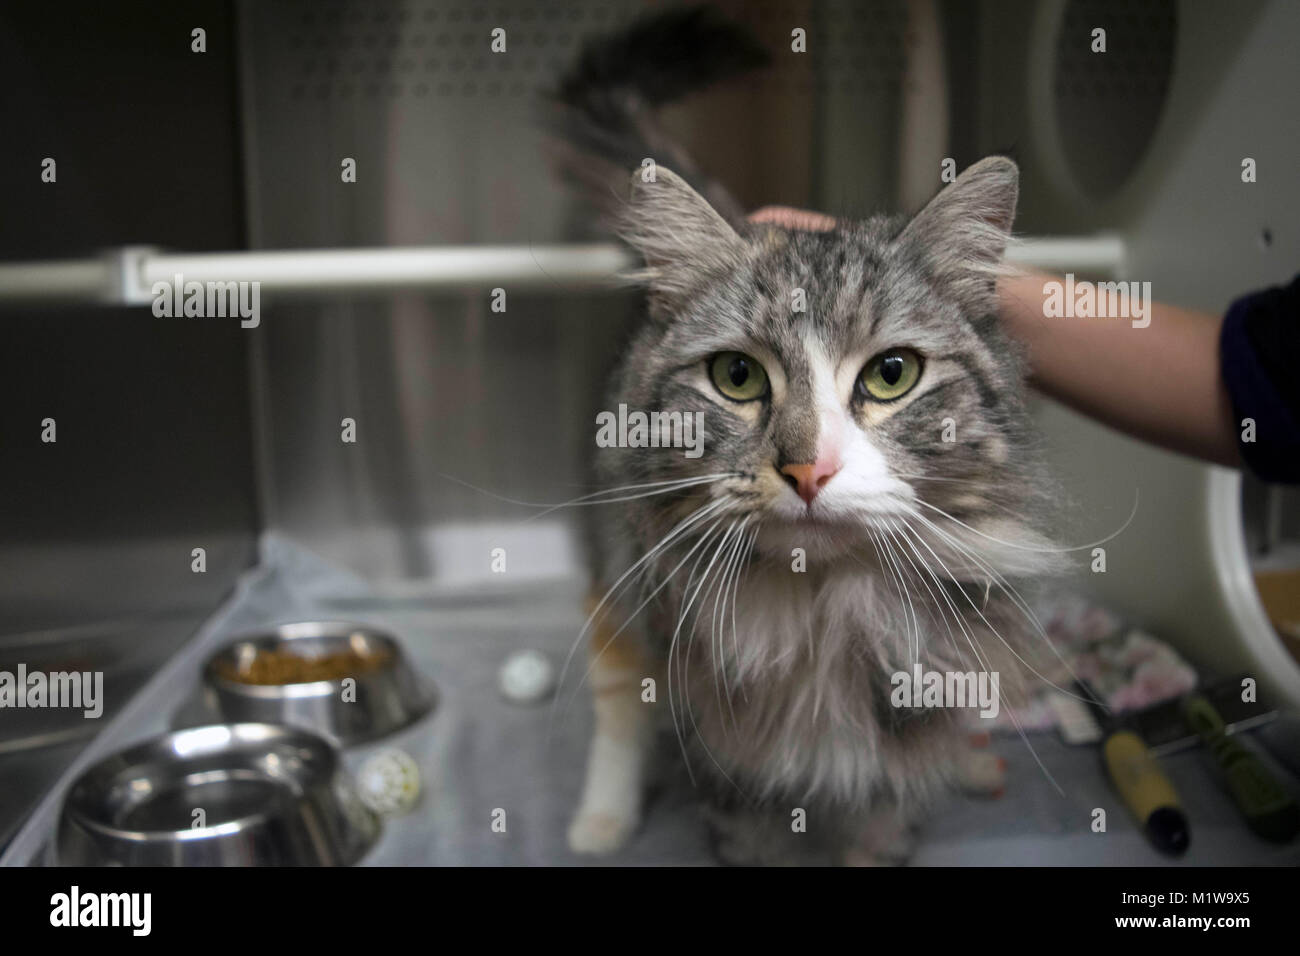 A volunteer pets a cat at the local animal shelter. Stock Photo